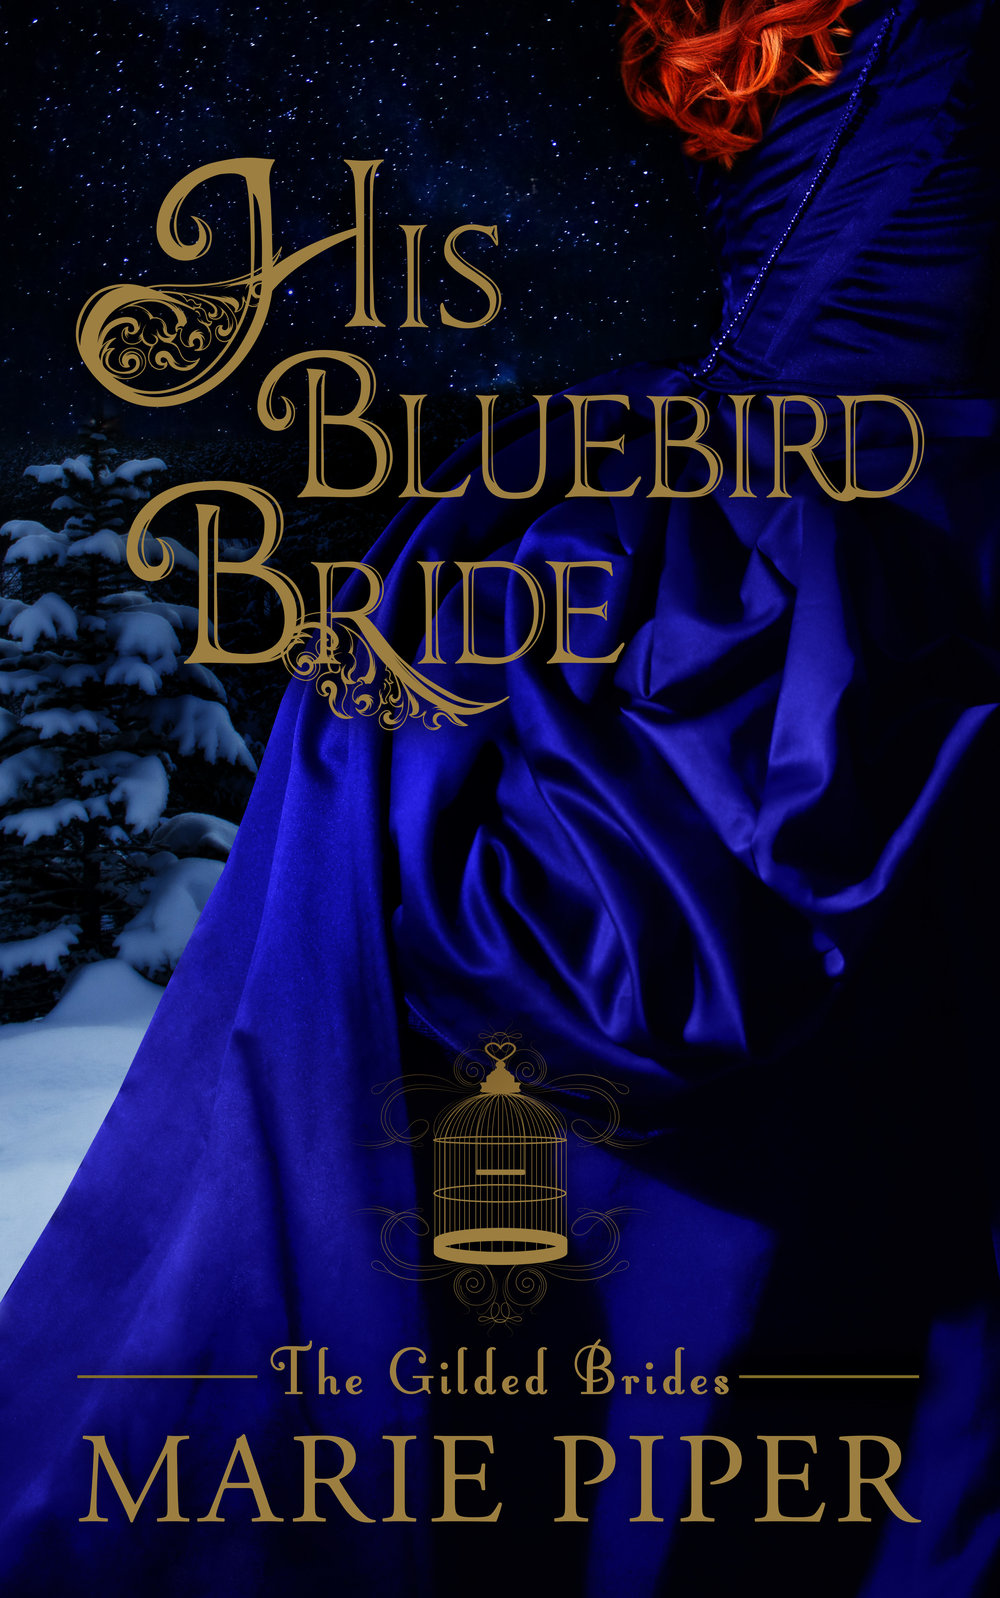 His Bluebird Bride - Available in ebook and paperbackBillie the Bluebird has had enough. For six years she's worked as Madam of The Gilded Cage, an upscale brothel in New Orleans, waiting for her lover—the club's owner—to marry her. When instead he breaks her heart, she answers a mail-order bride advertisement from a little town called Dancer in the wild Dakota territory, as far away from New Orleans as possible. Claiming to be a widow named Willa, she arrives just before Christmas and marries the kind and responsible town doctor Elijah Higgins.Once, Elijah dreamed of a life full of adventure like in the dime store novels he loves, but Dancer is a tough place. Elijah is thrilled his bride appears to be a hard-working woman of simple tastes. Life is about responsibilities, and love is an afterthought at best.Through preparation for Dancer's holiday party and the coming of winter snows, Billie and Elijah find themselves drawn closer together into a passion neither expected and that neither can resist. When Dancer is threatened, only Billie can save it. To be the miracle the town needs, will she reveal her sordid past and risk her chance at a happy future?